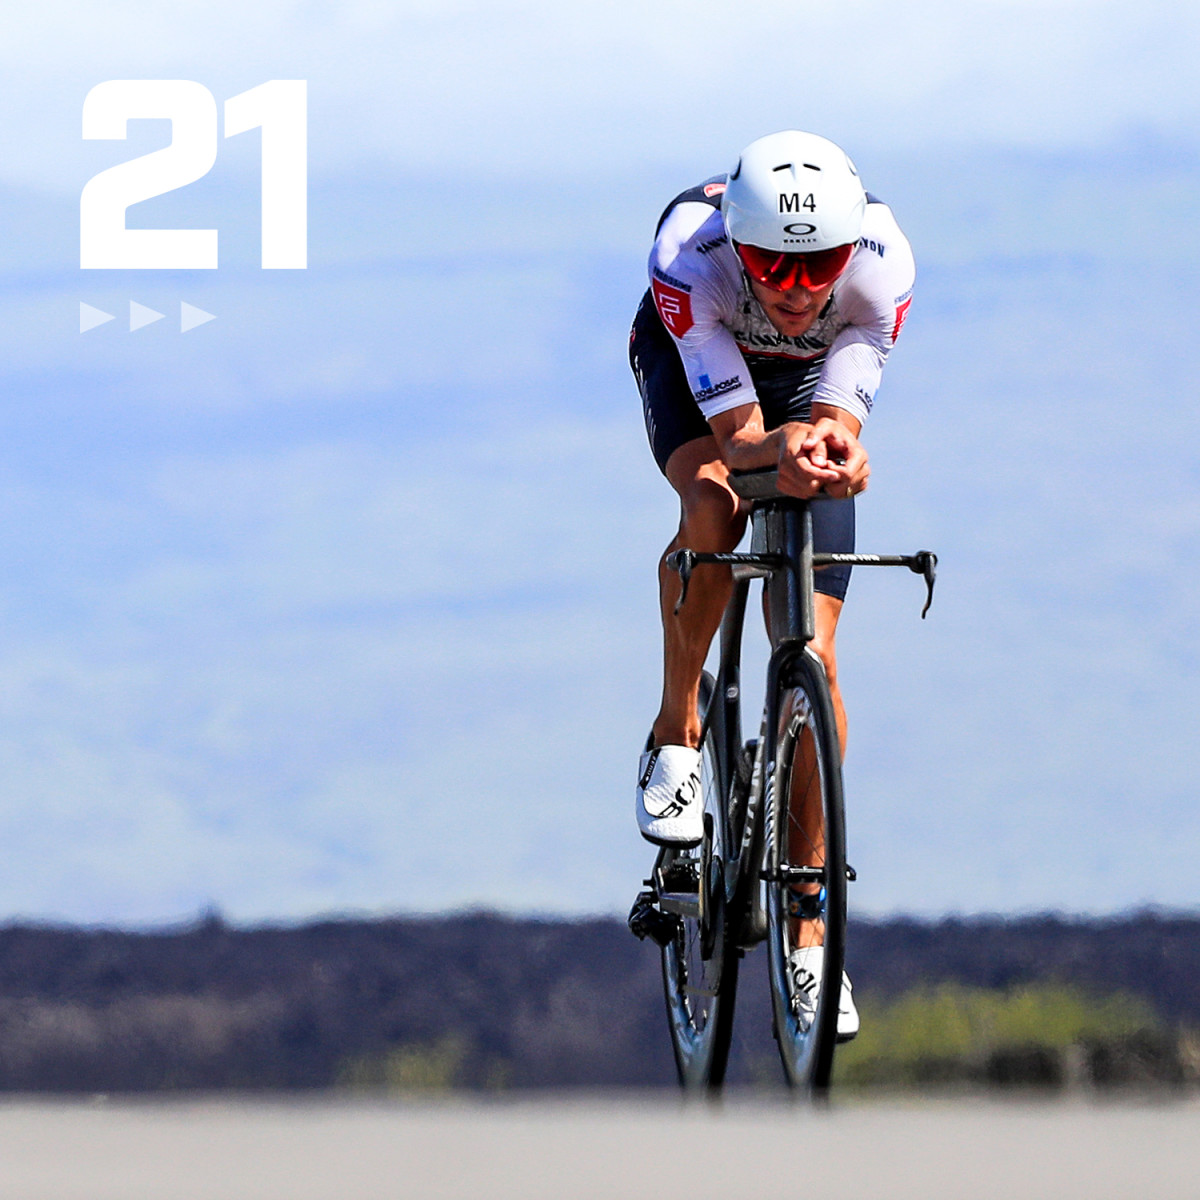 Jan_Frodeno_01_GRAPHIC_M21